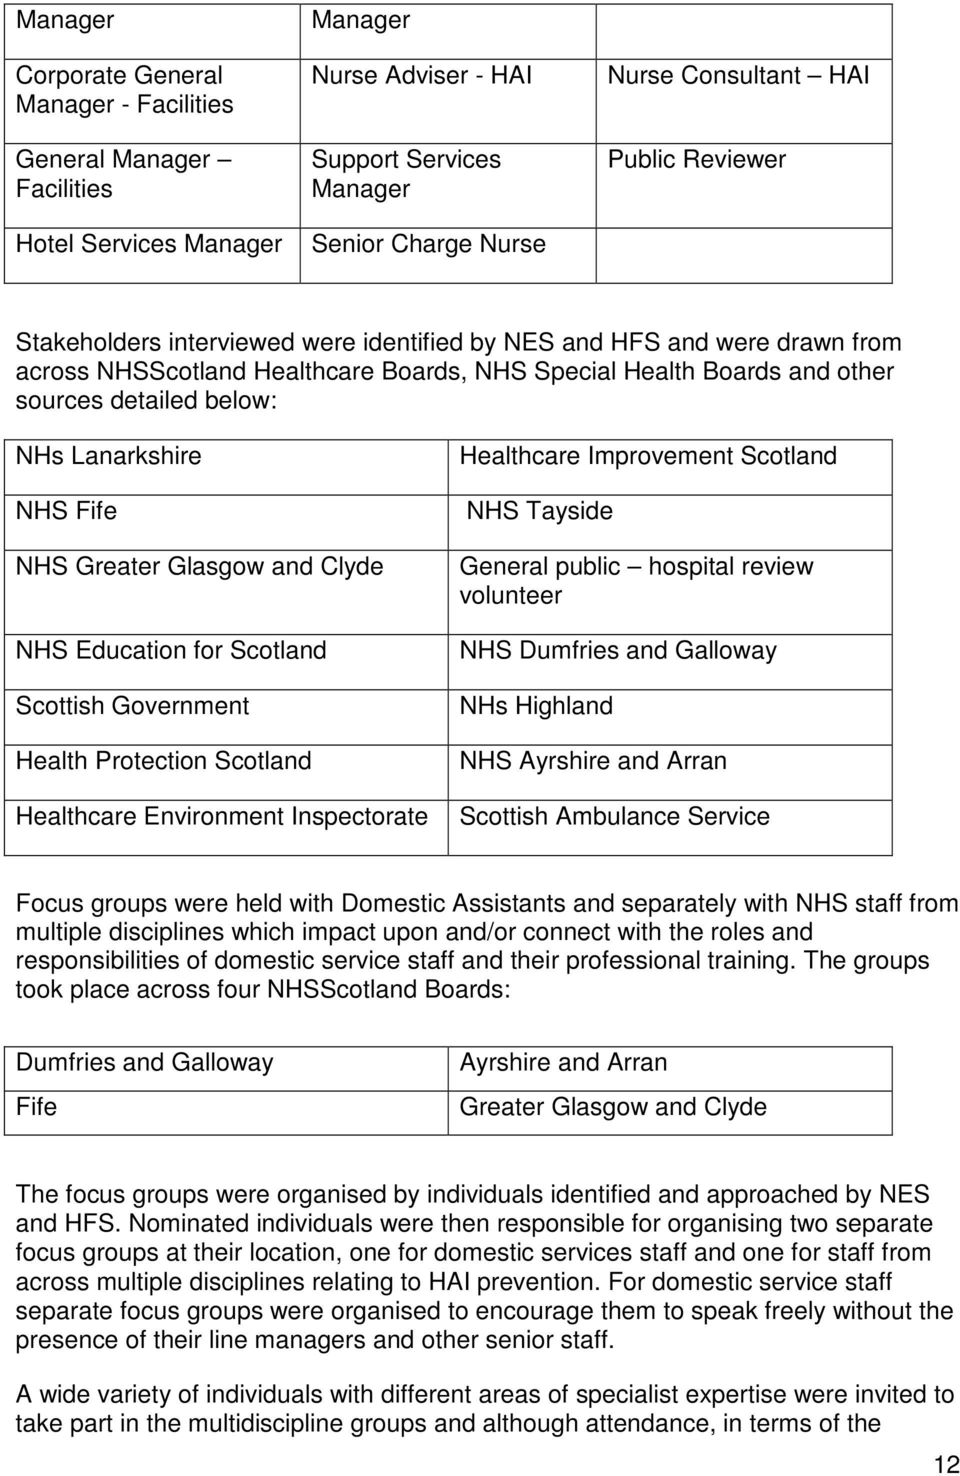 NHS Fife NHS Greater Glasgow and Clyde NHS Education for Scotland Scottish Government Health Protection Scotland Healthcare Environment Inspectorate Healthcare Improvement Scotland NHS Tayside